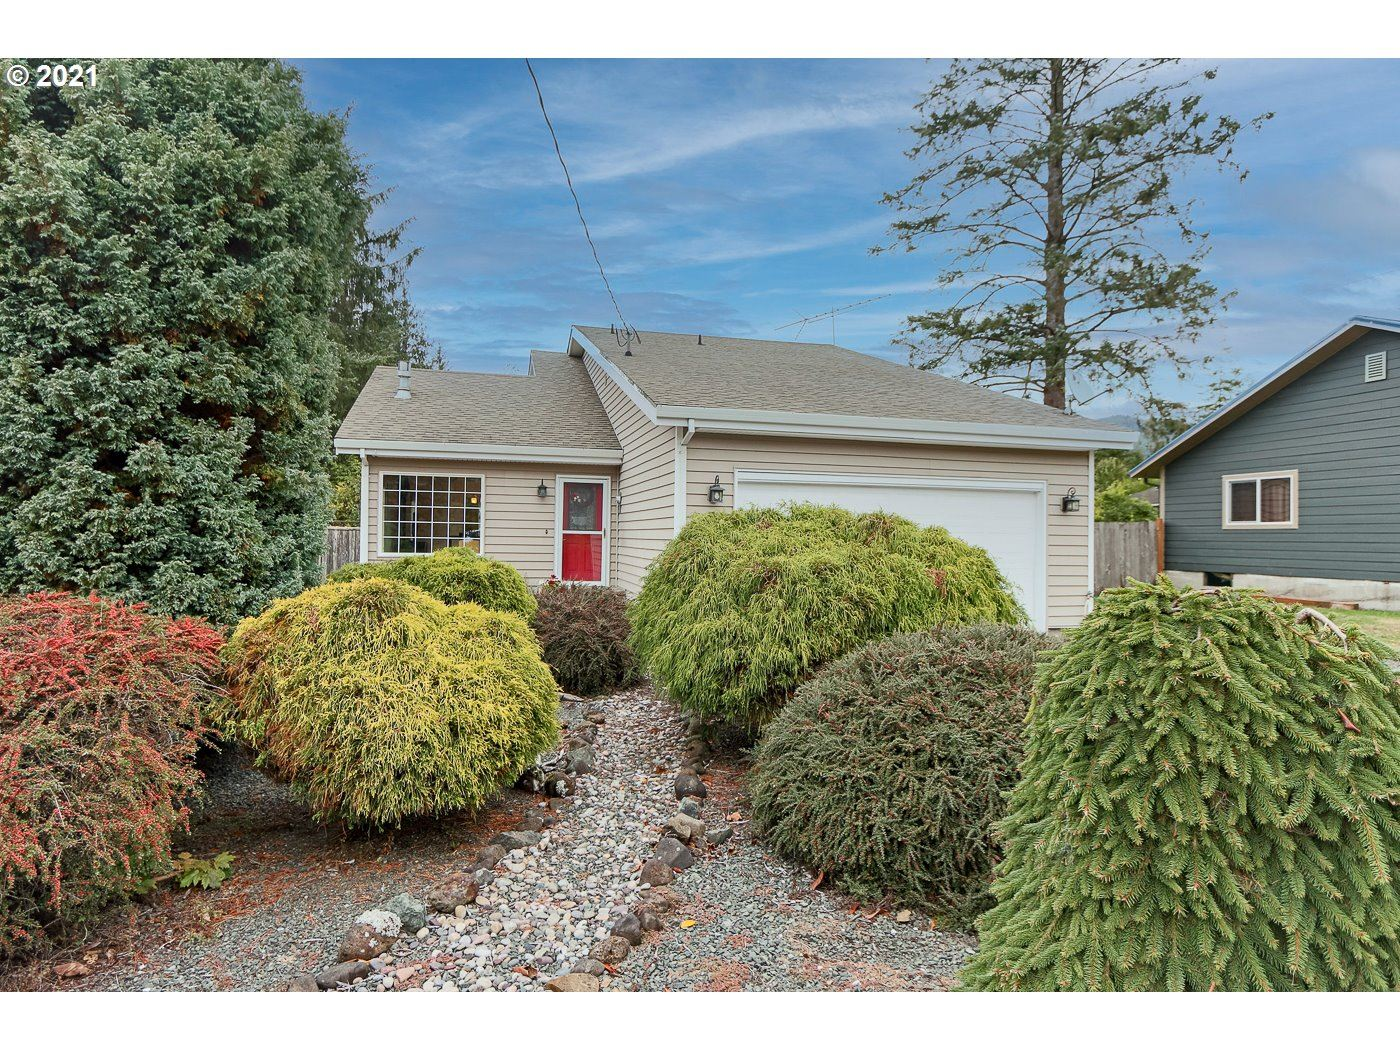 4750 SPRUCE ST, Bay City, OR 97107 - MLS#: 21381354